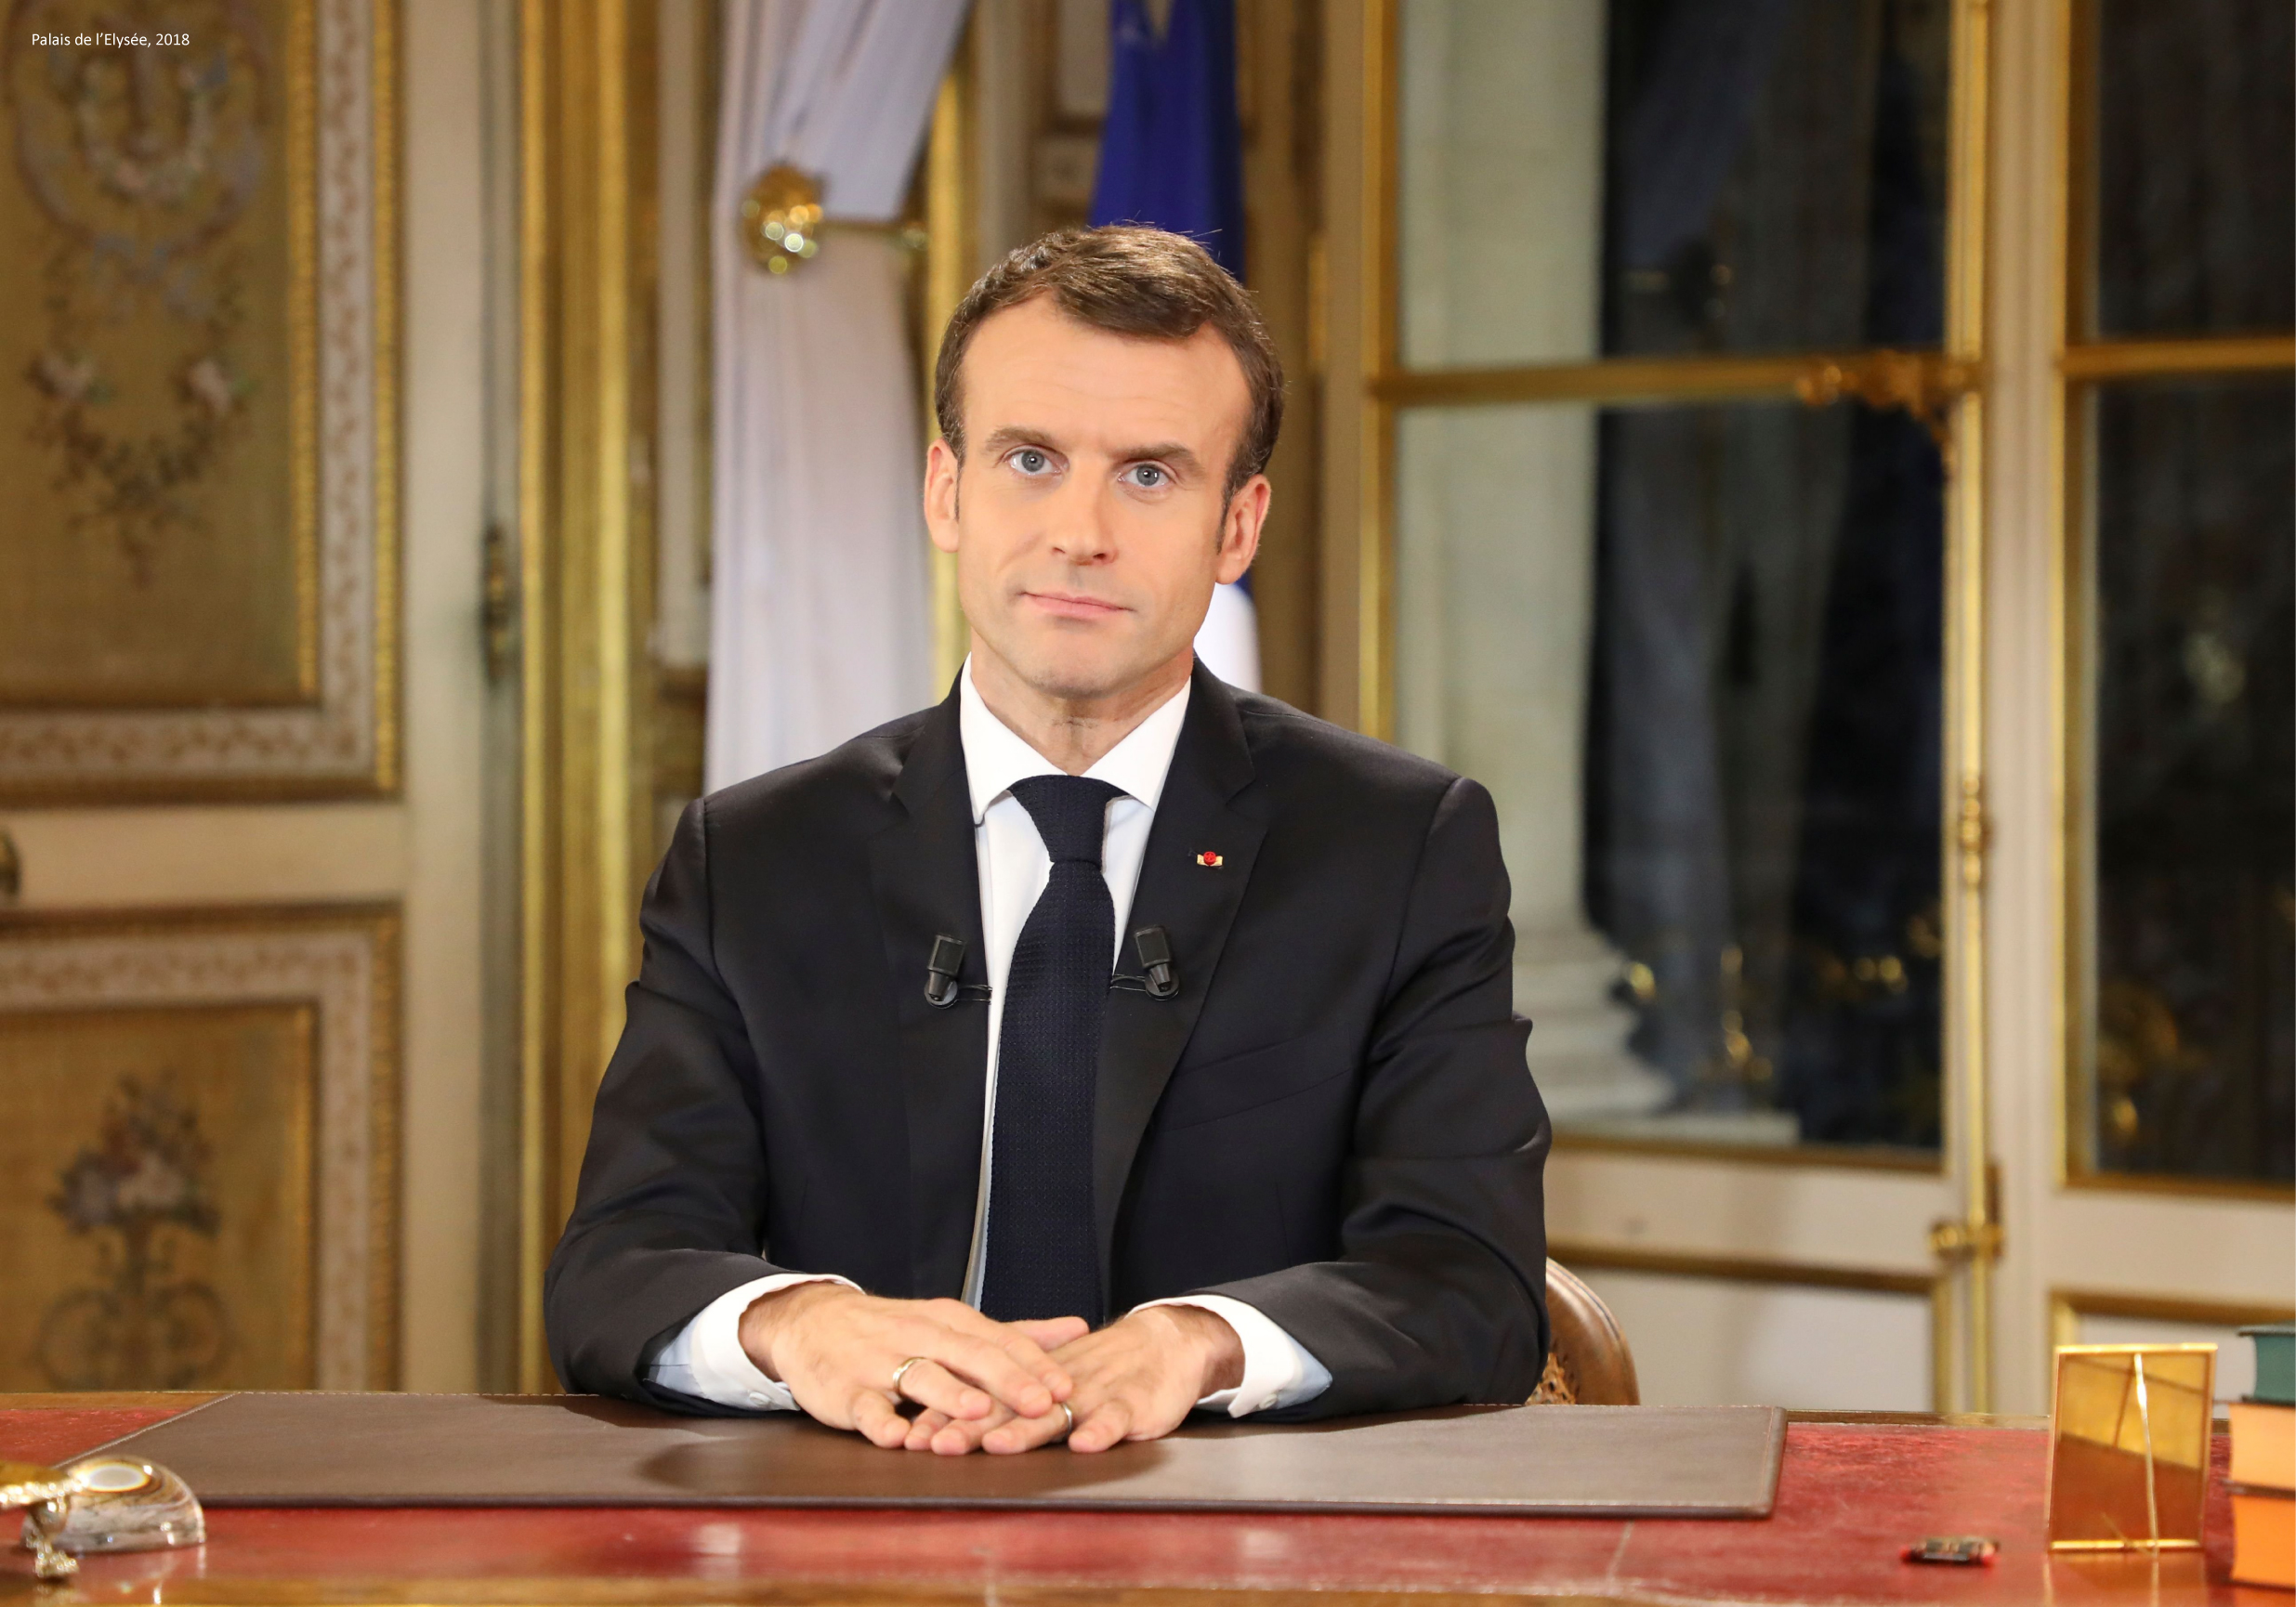 ventdouxprod 2019 nicolas barbier if my continent weren't so ruthless with african economic refugees president macron responsible for the suffering of refugees